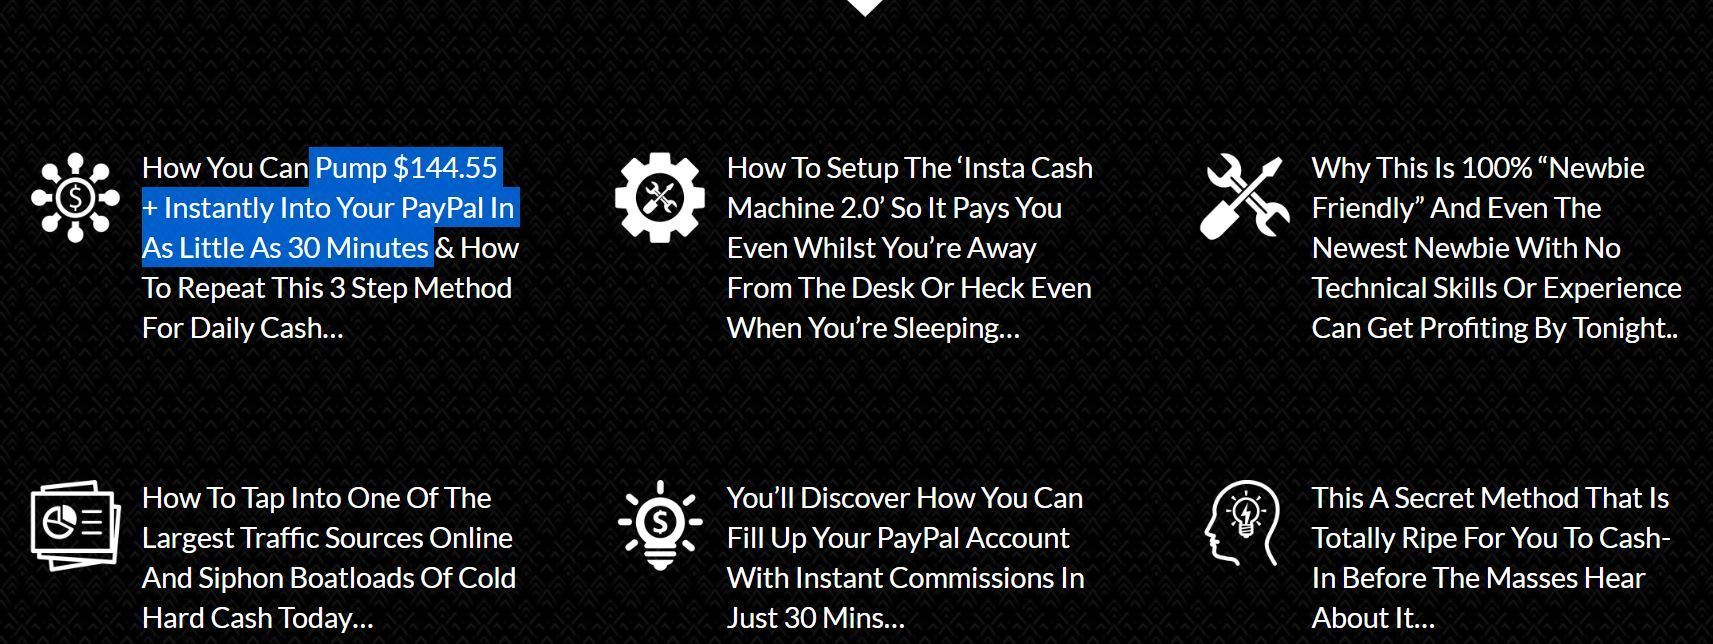 insta-cash-machine-2-scam